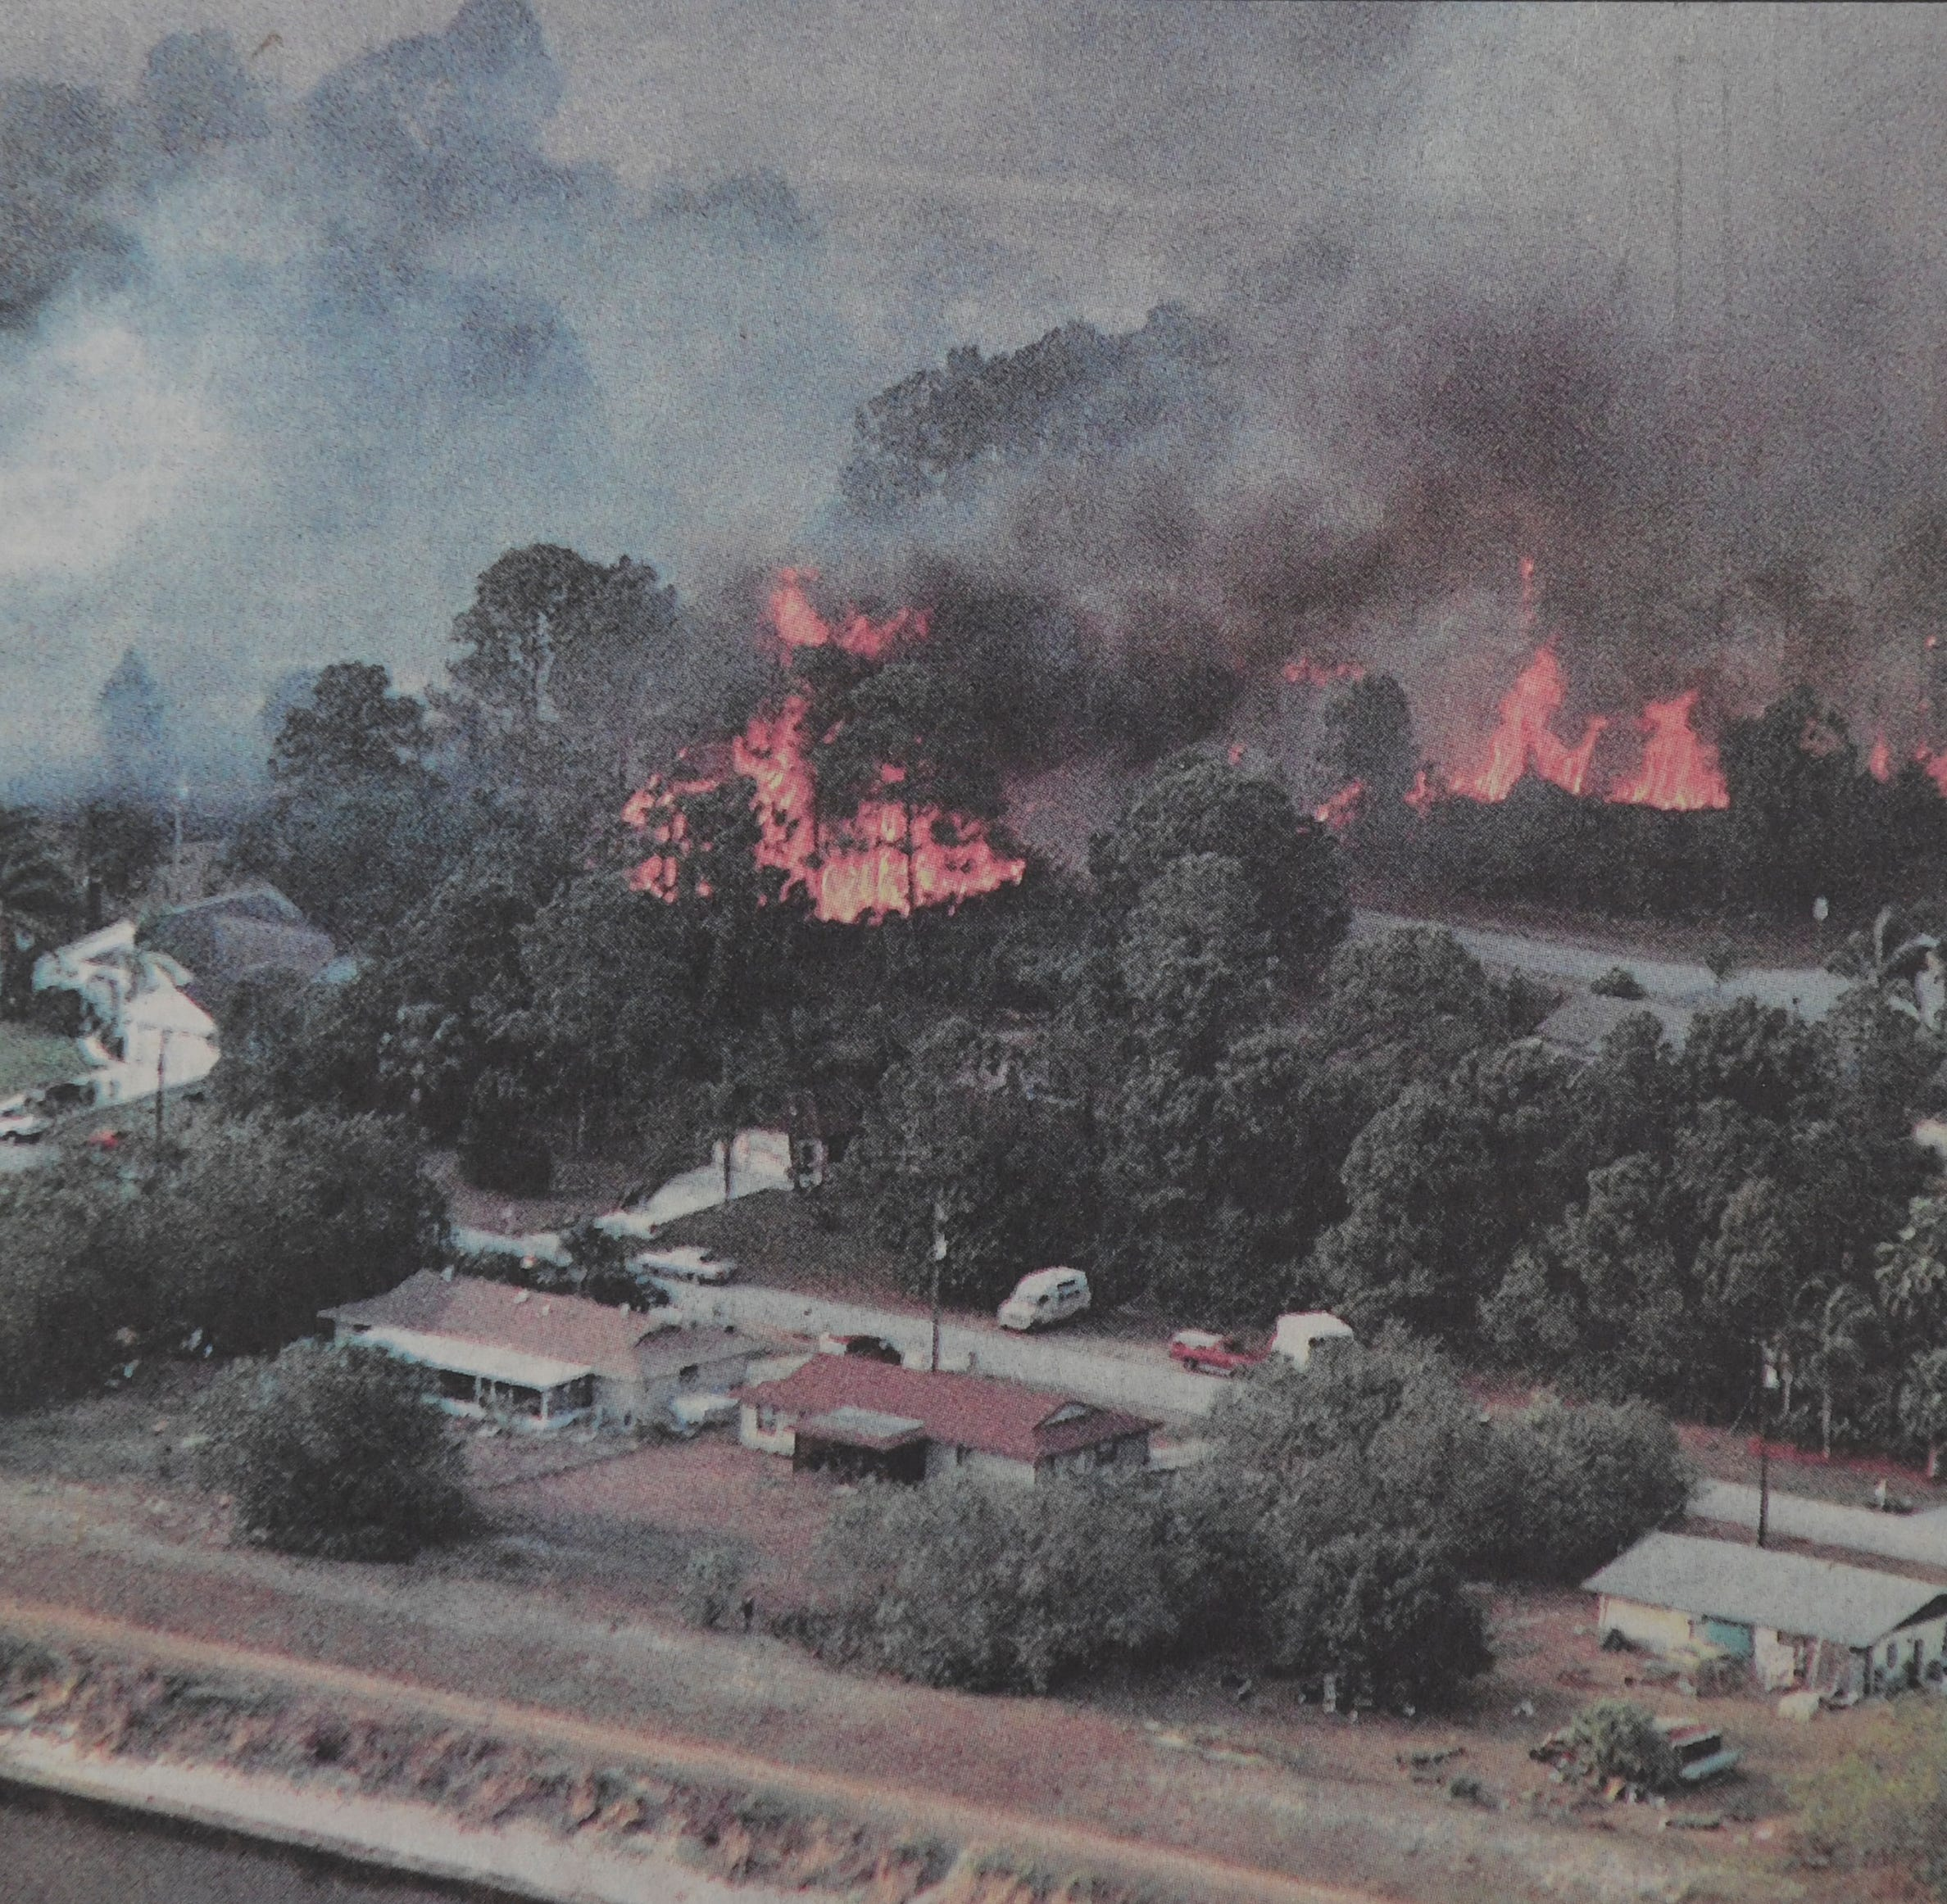 Port St. Lucie fire, 20 years later: How has the city changed since historic blaze?